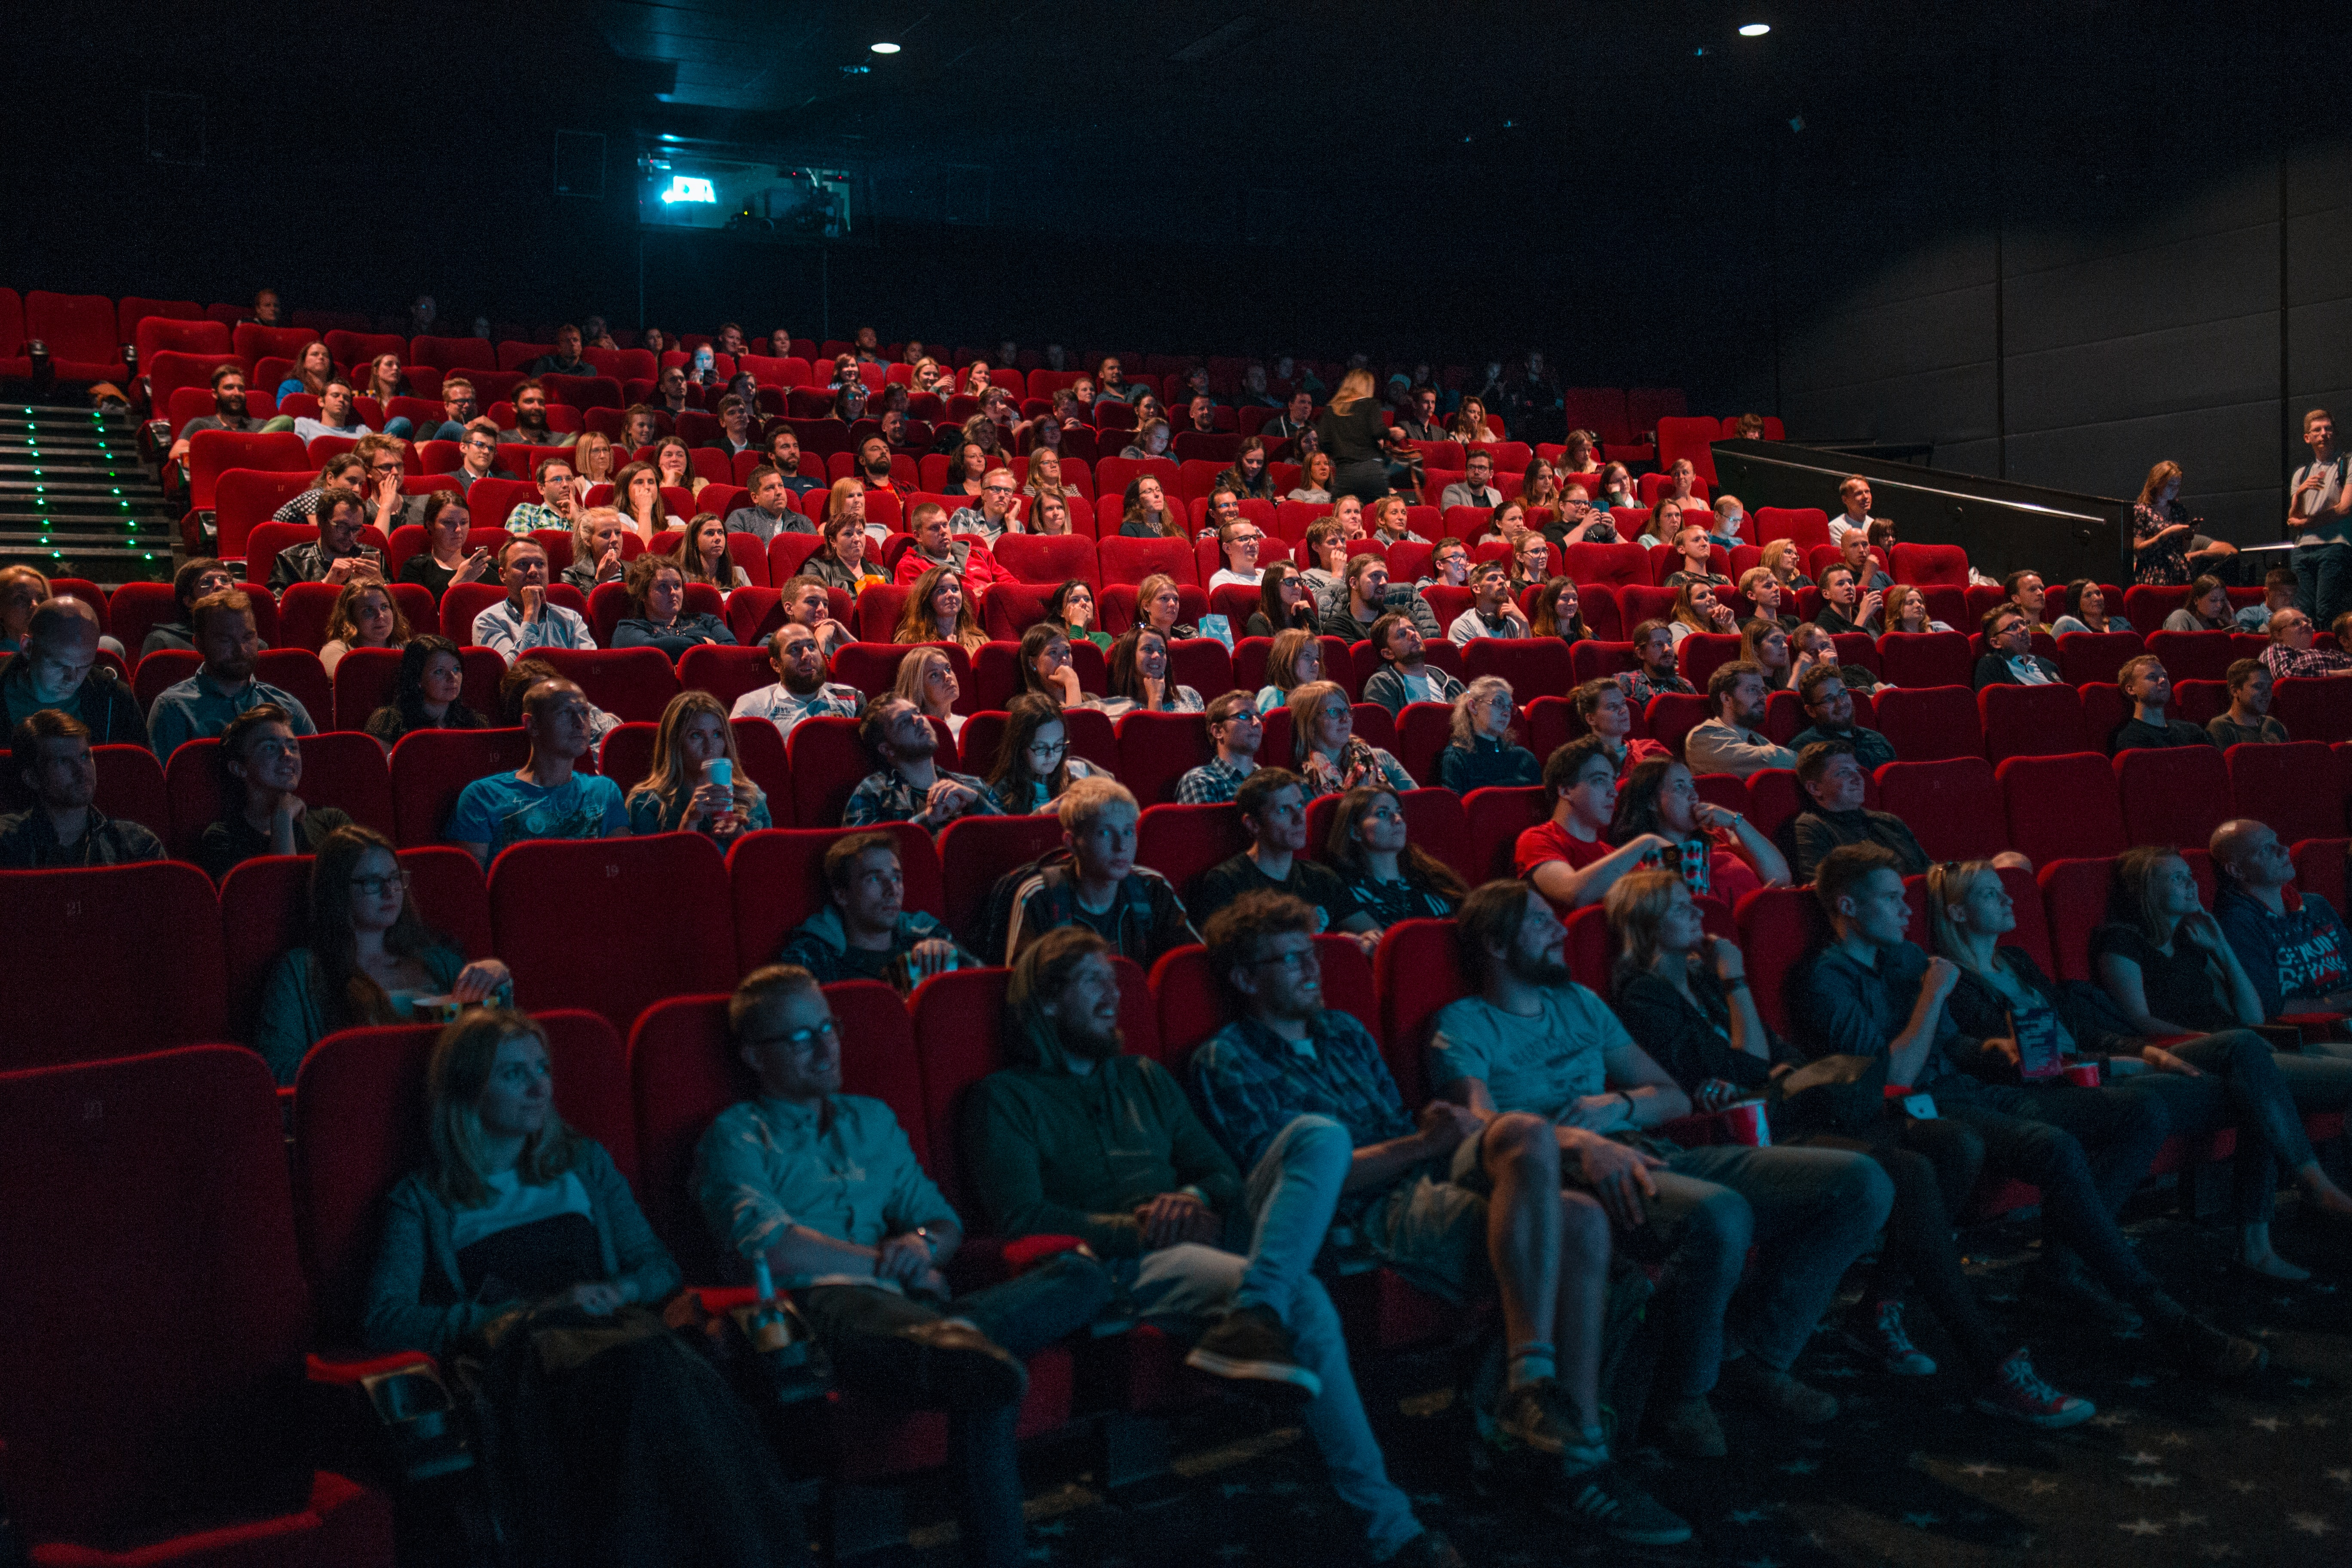 How are Movie Enthusiasts Feeling about Movie Theaters Reopening